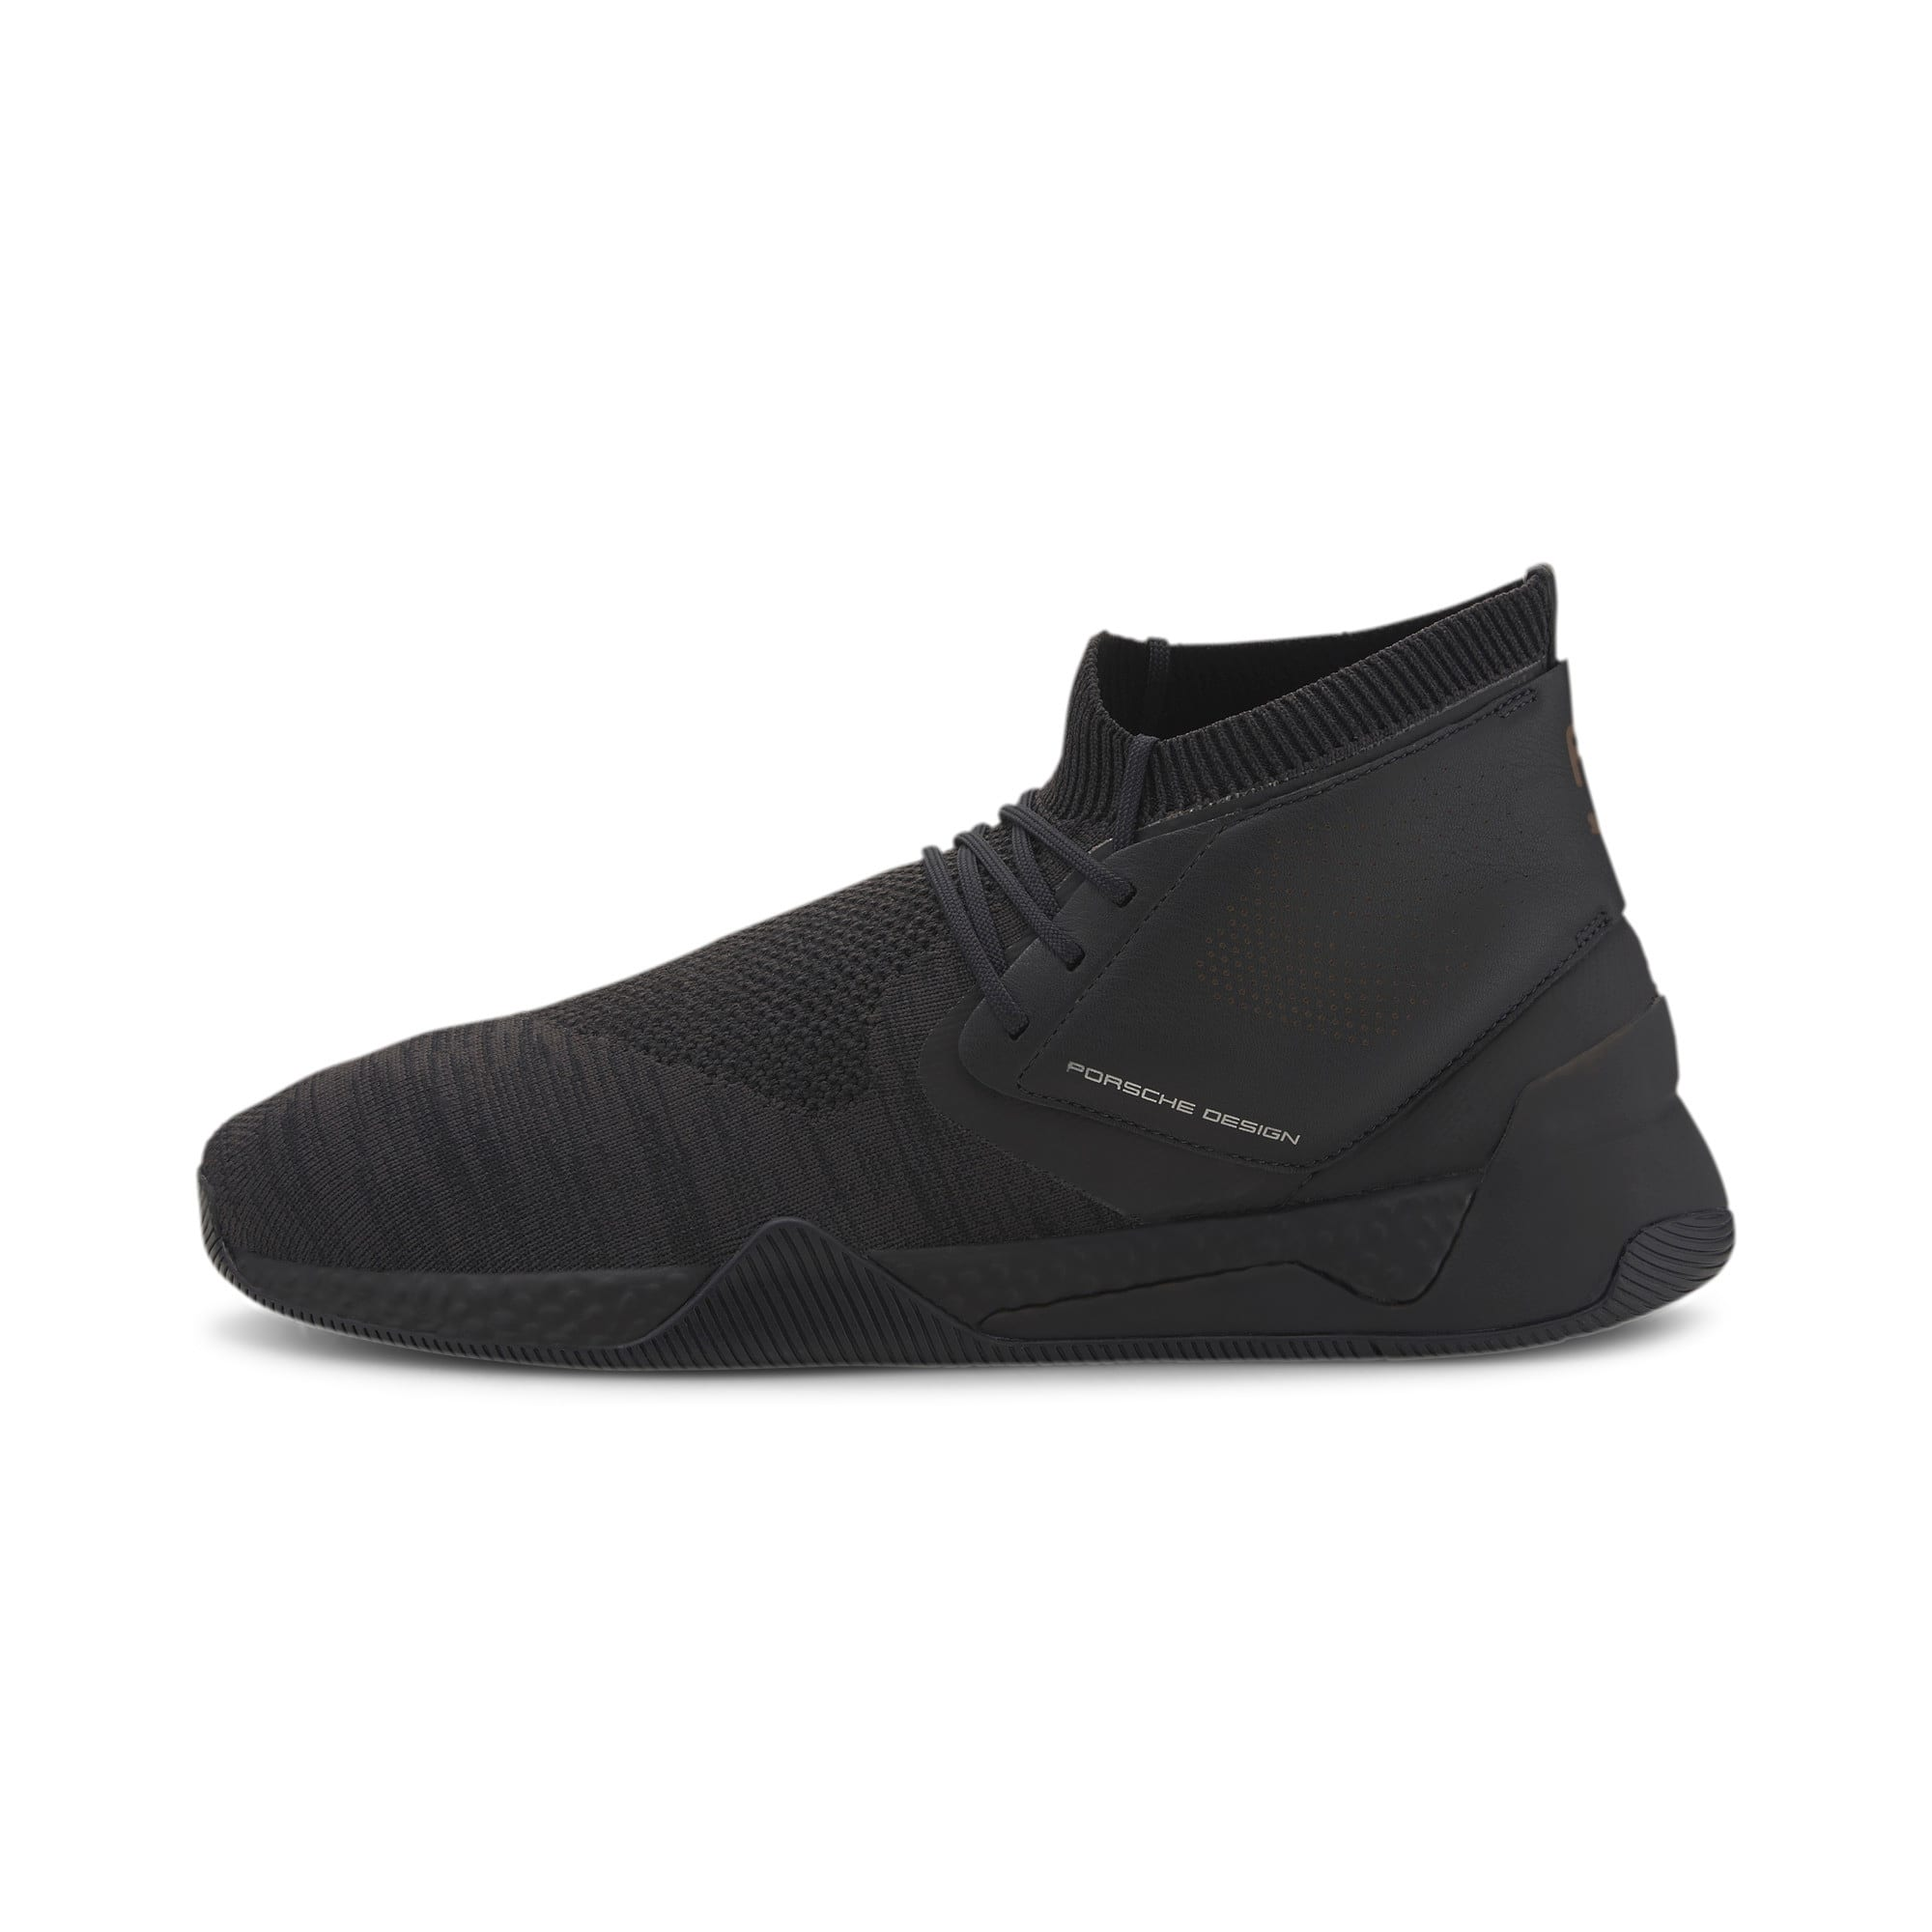 Thumbnail 1 of Porsche Design Hybrid evoKNIT Men's Trainers, Jet Black-Jet Black-JetBlack, medium